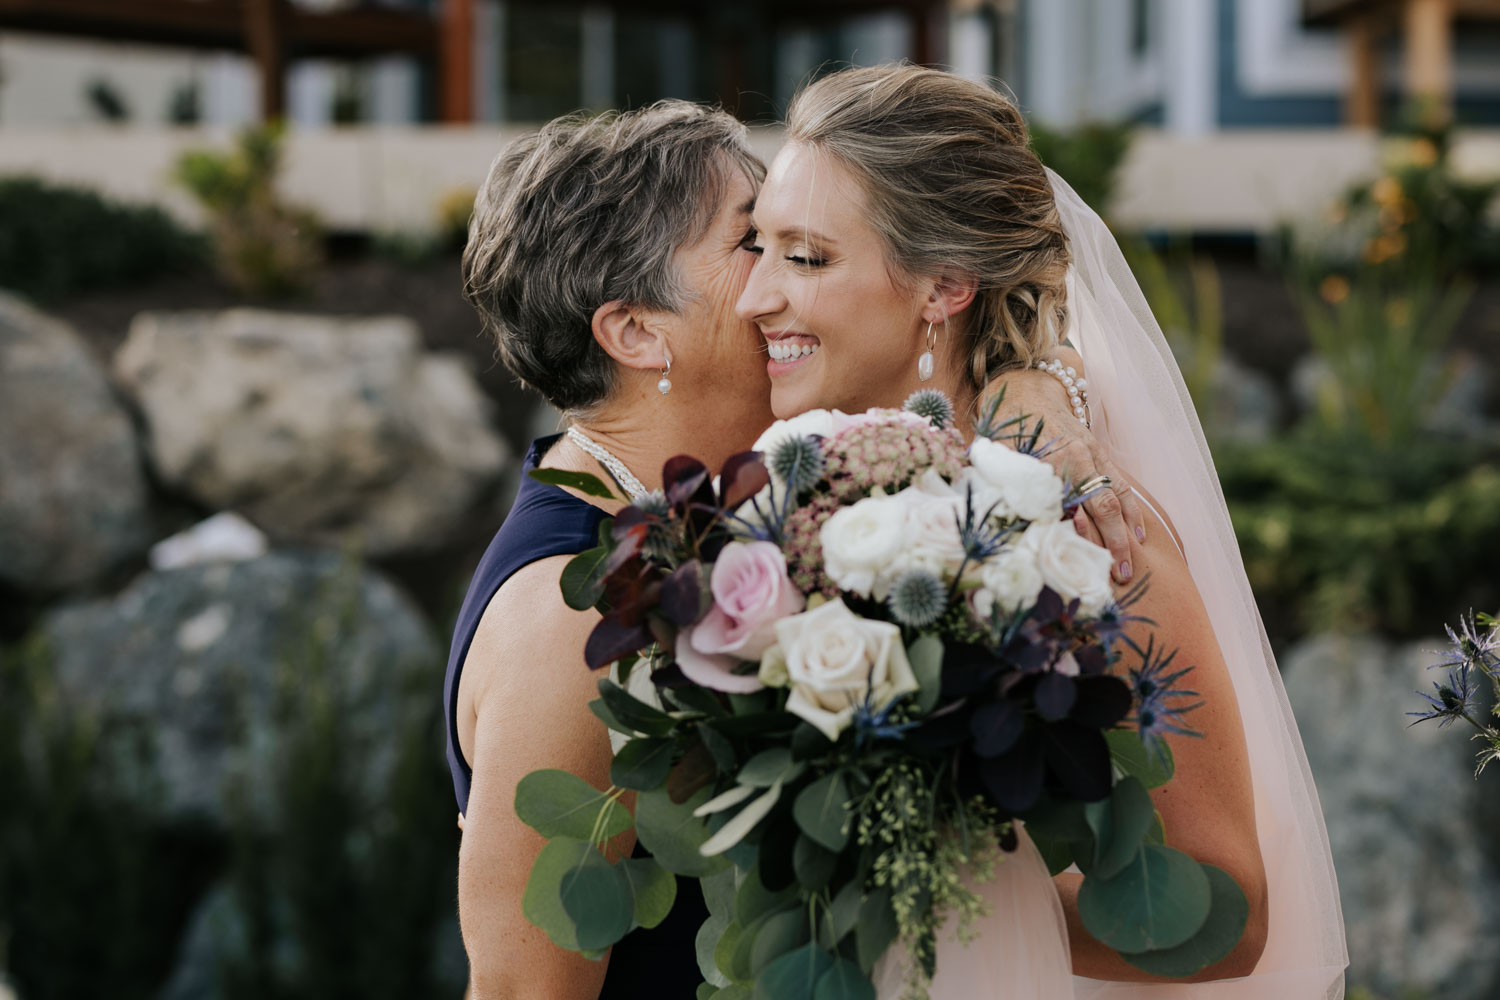 Mom hugs bride who is holding beautiful wedding bouquet of soft pinks, greys, burgundy and subtle green